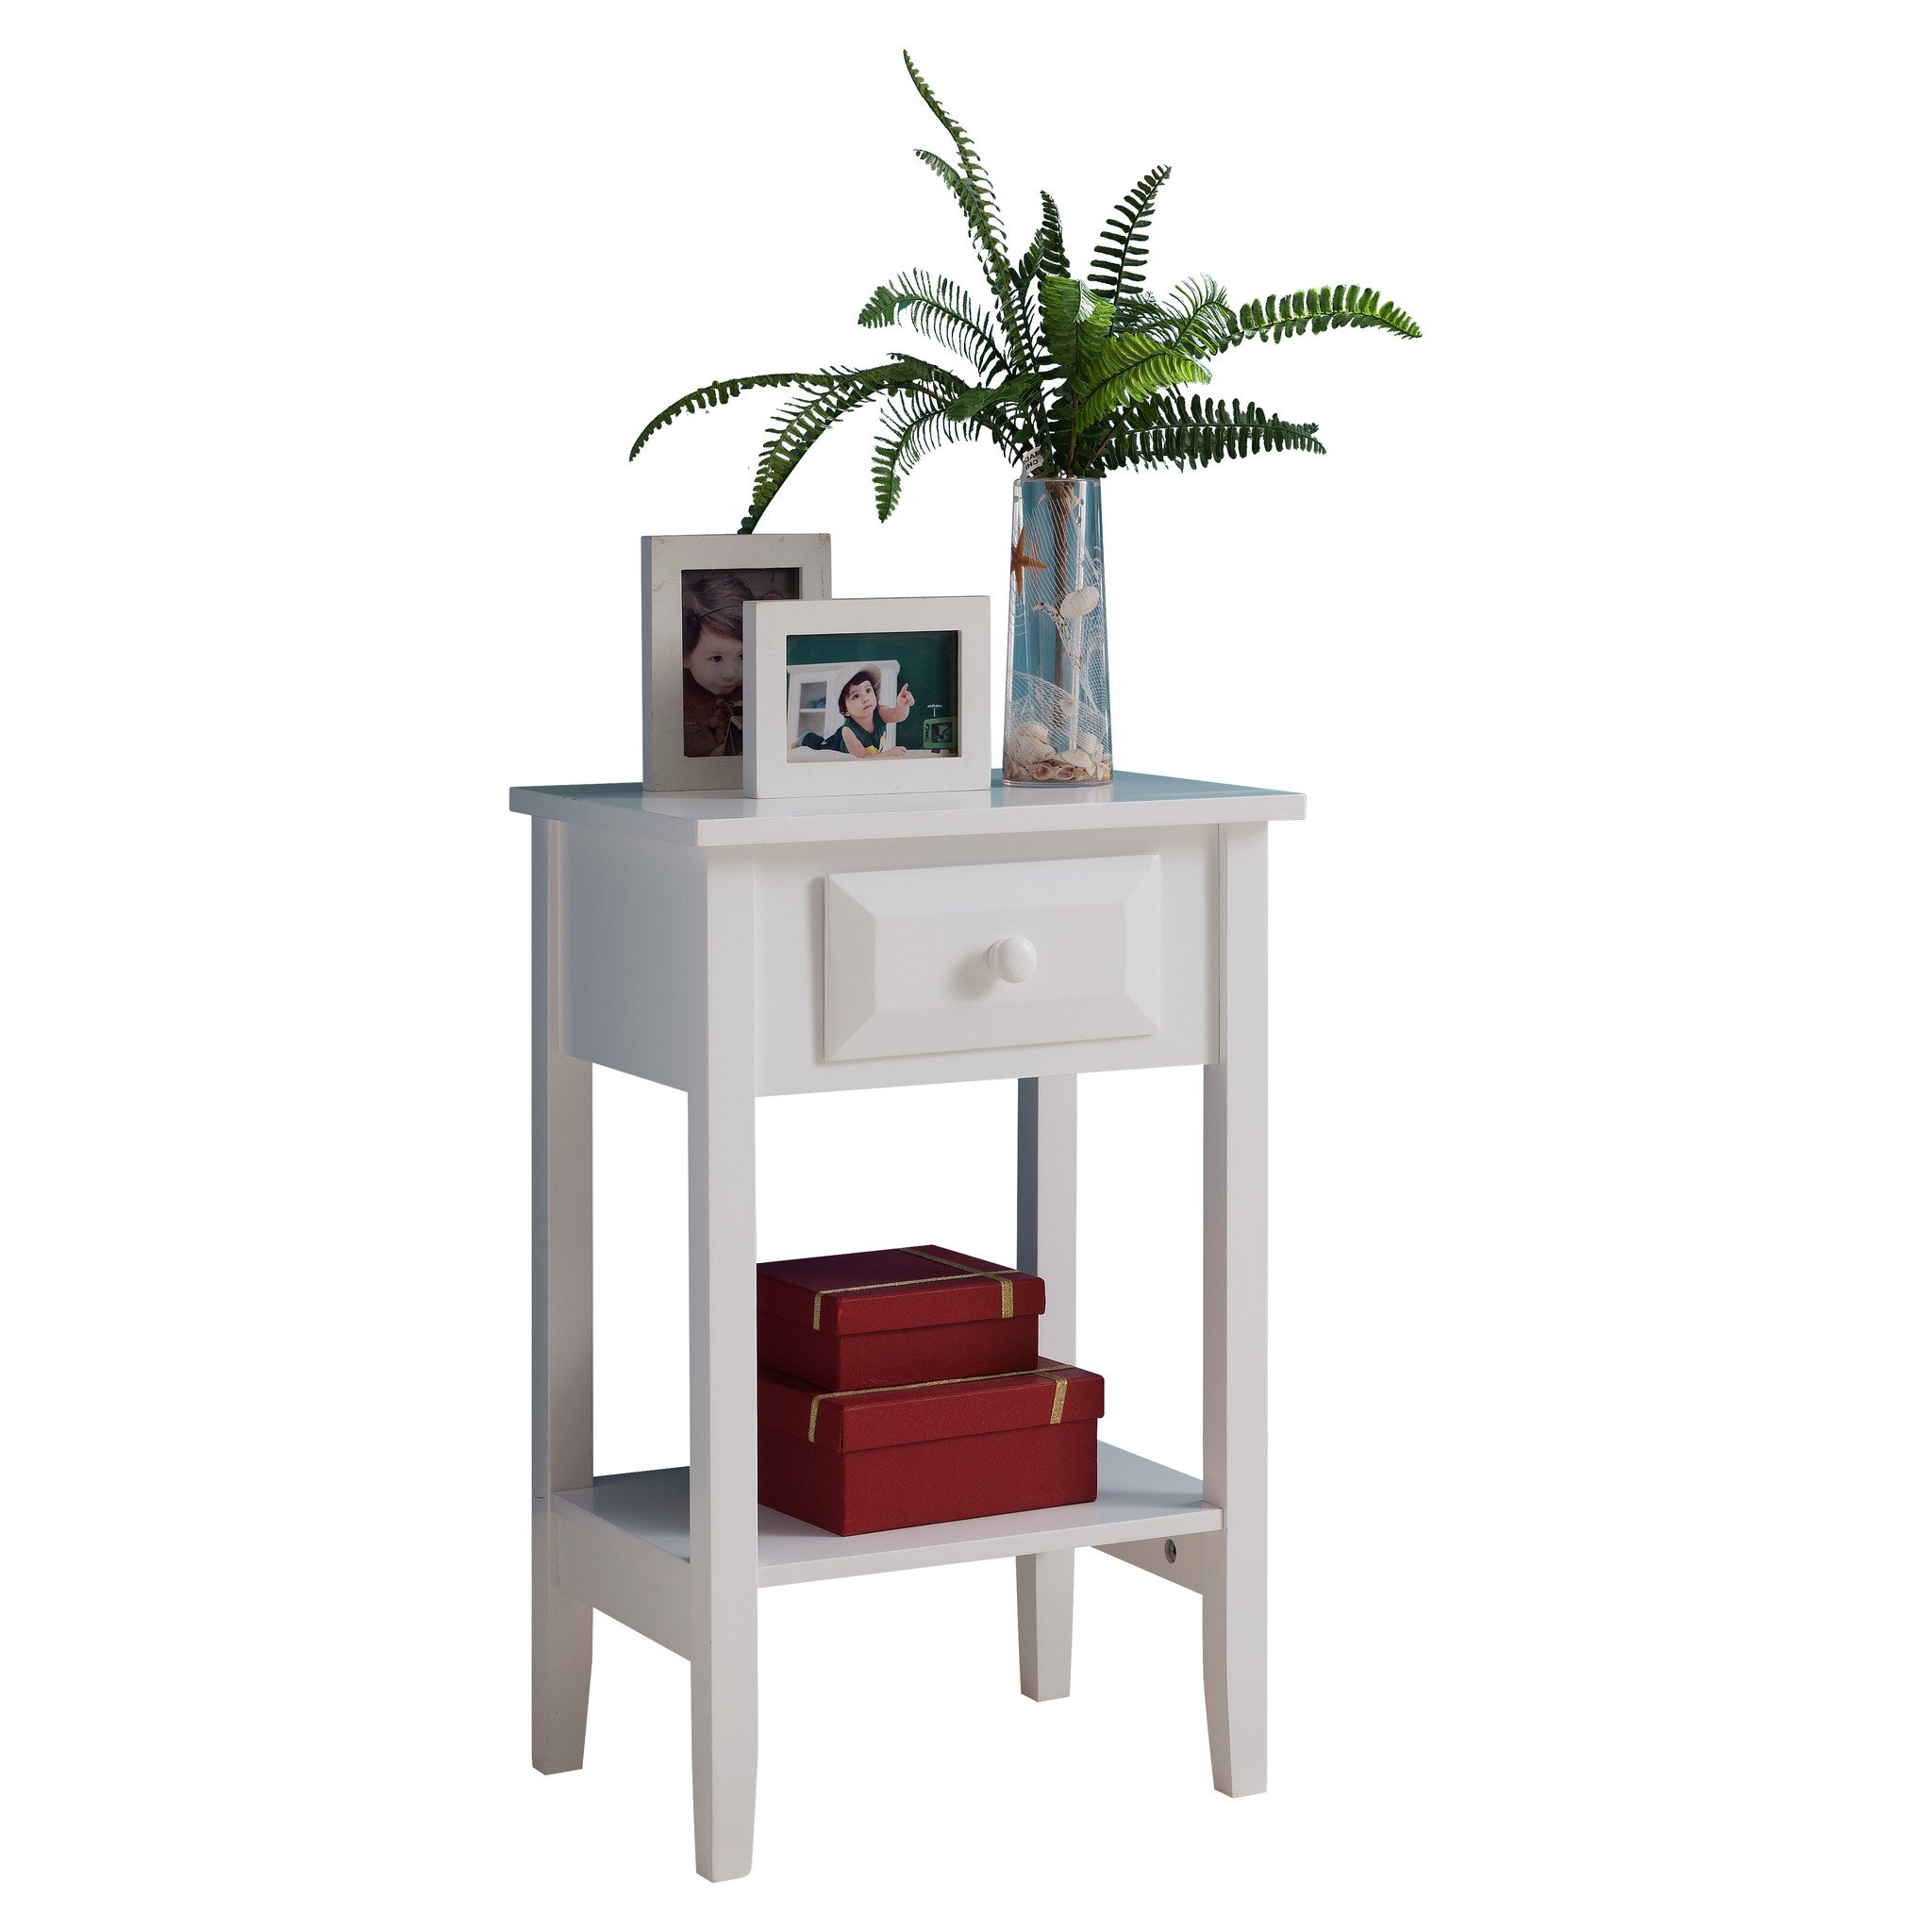 white wood kids accent storage side table night stand with drawer distressed coffee and end tables piece faux marble set outdoor wicker patio furniture steel bedside small round